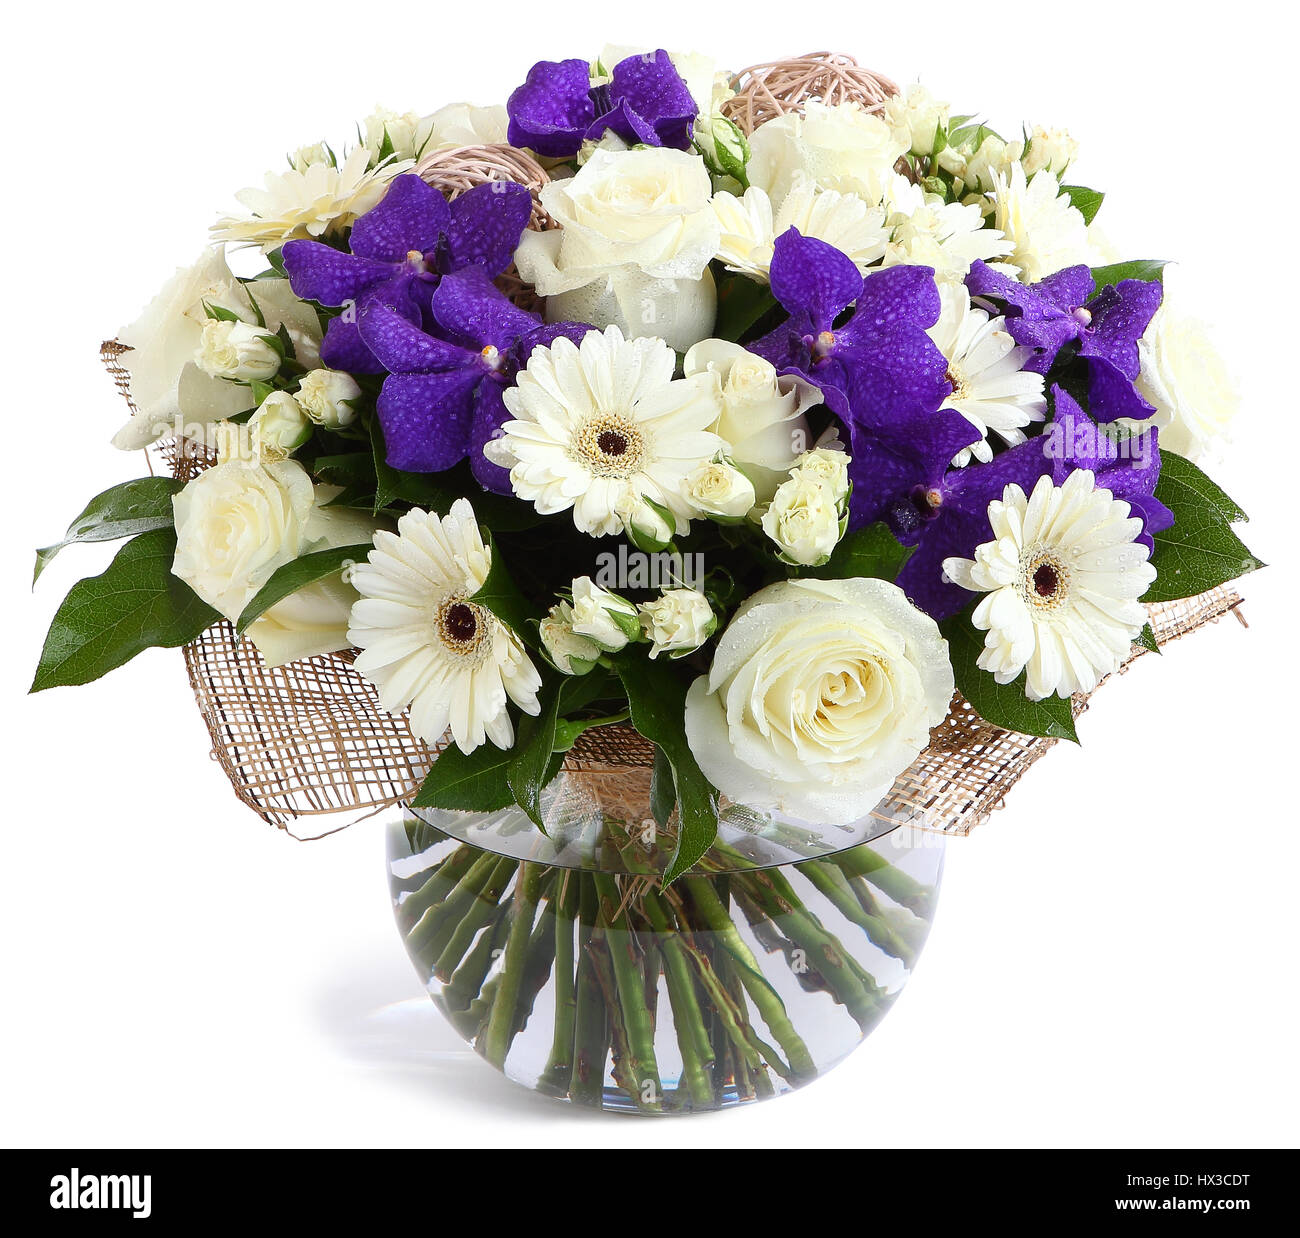 bouquets purple white orchid flowers stock photos  bouquets, Beautiful flower